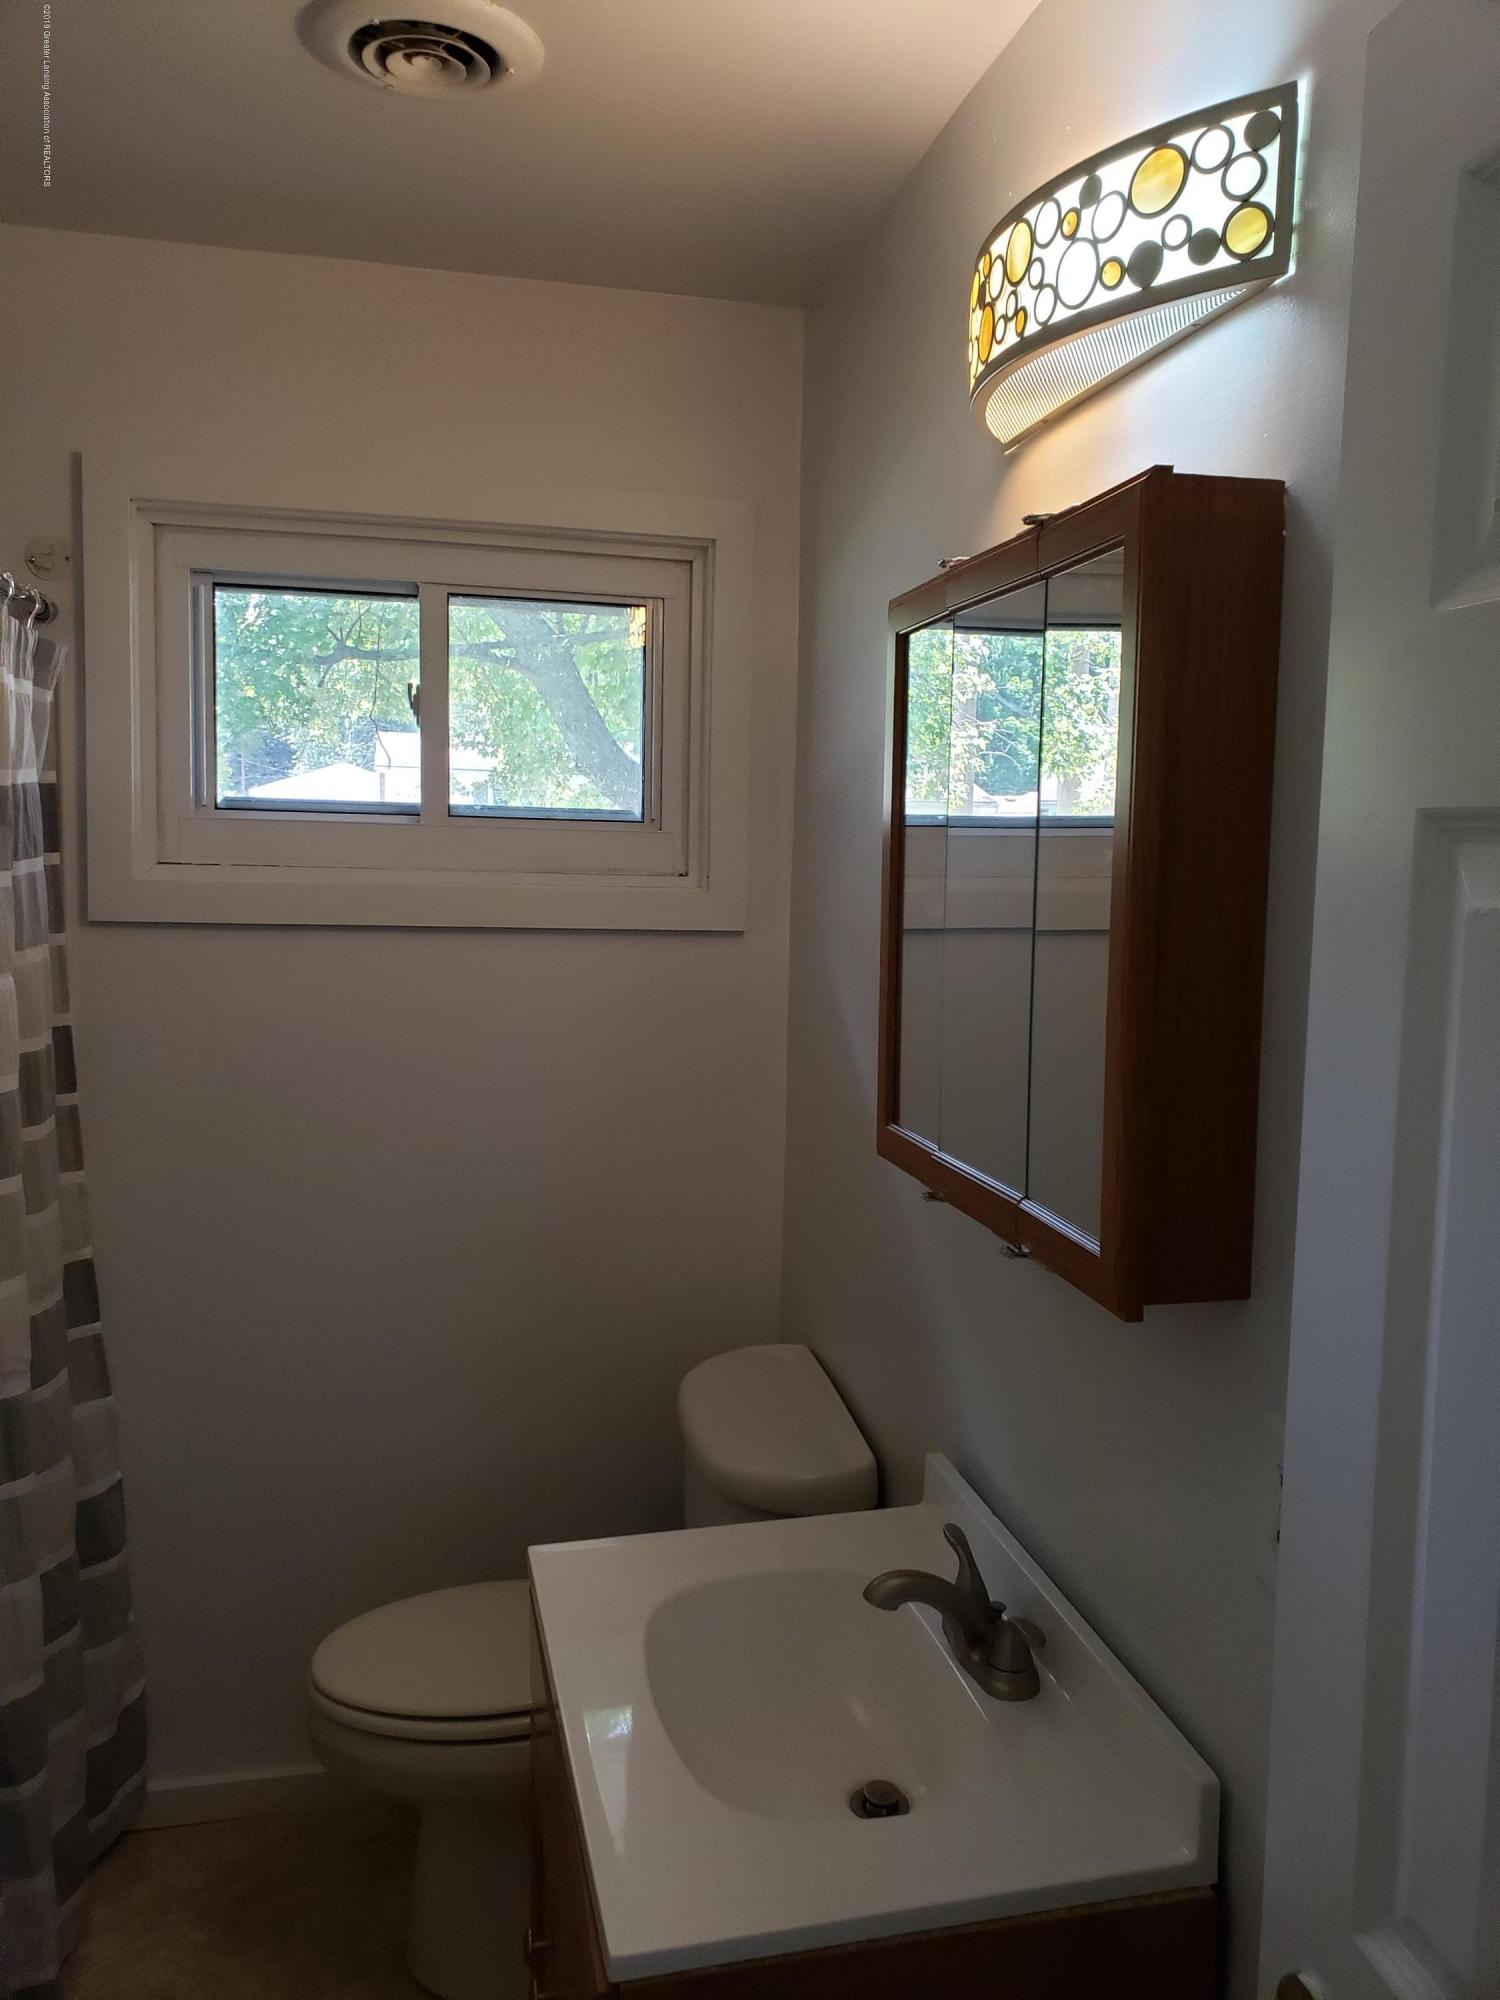 6037 Hughes Rd - Hughes bathroom - 5